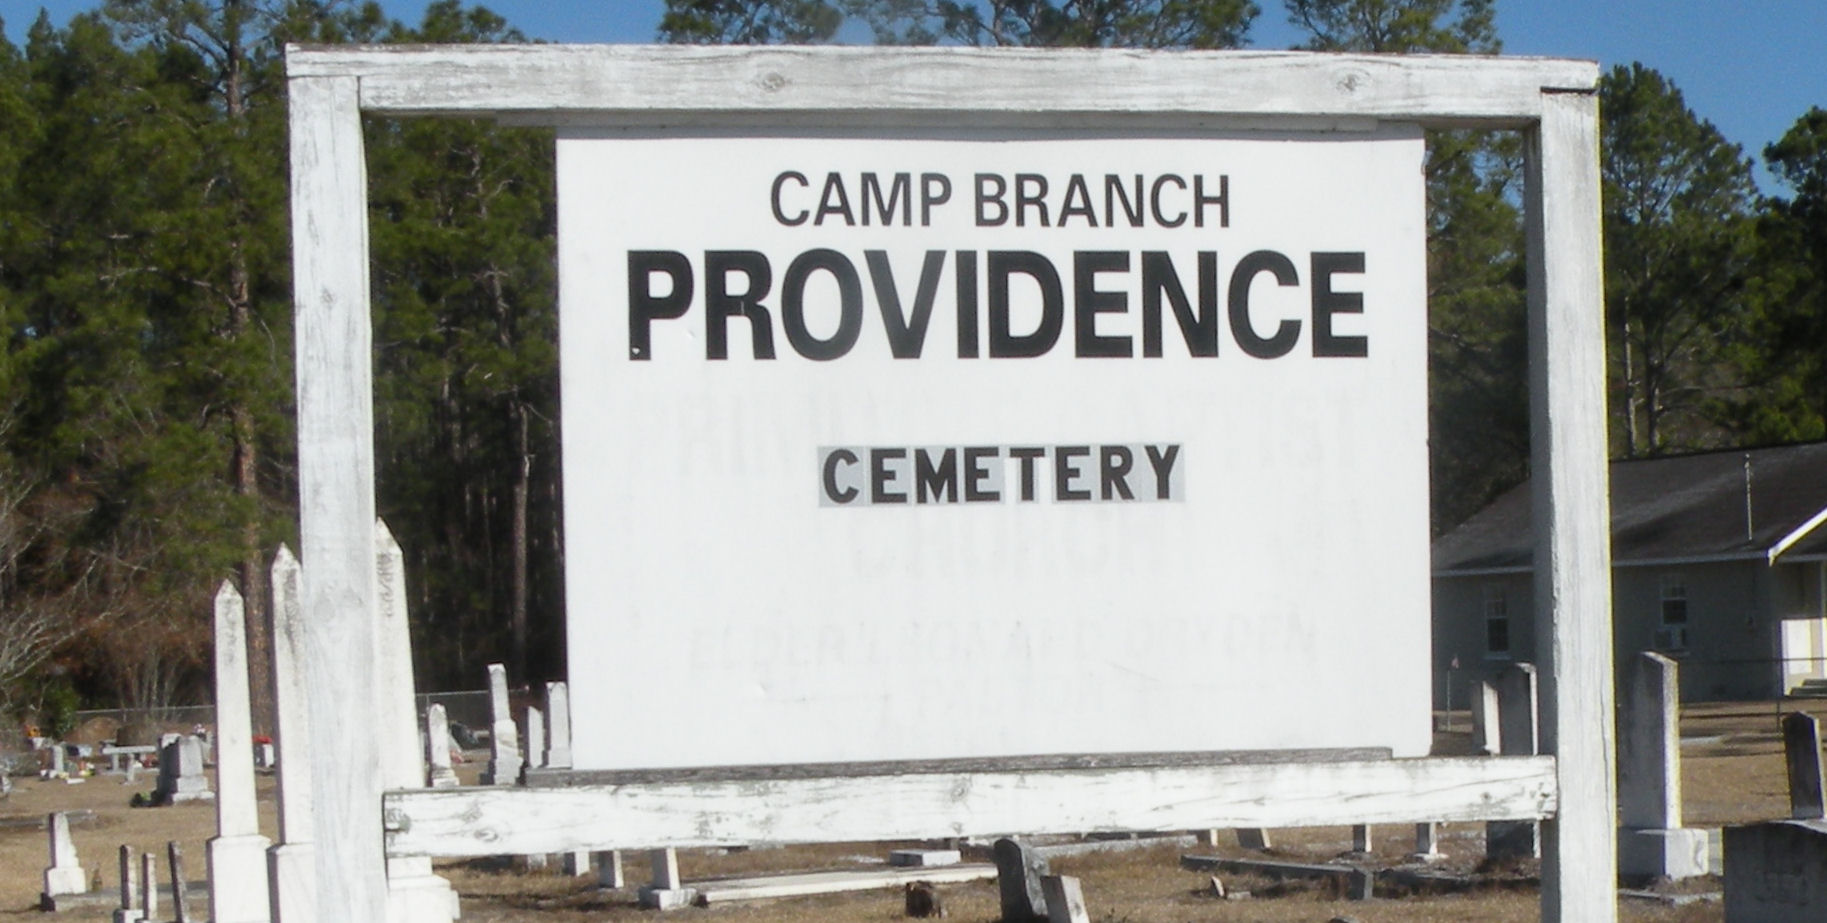 Camp Branch Primitive Baptist Church Cemetery